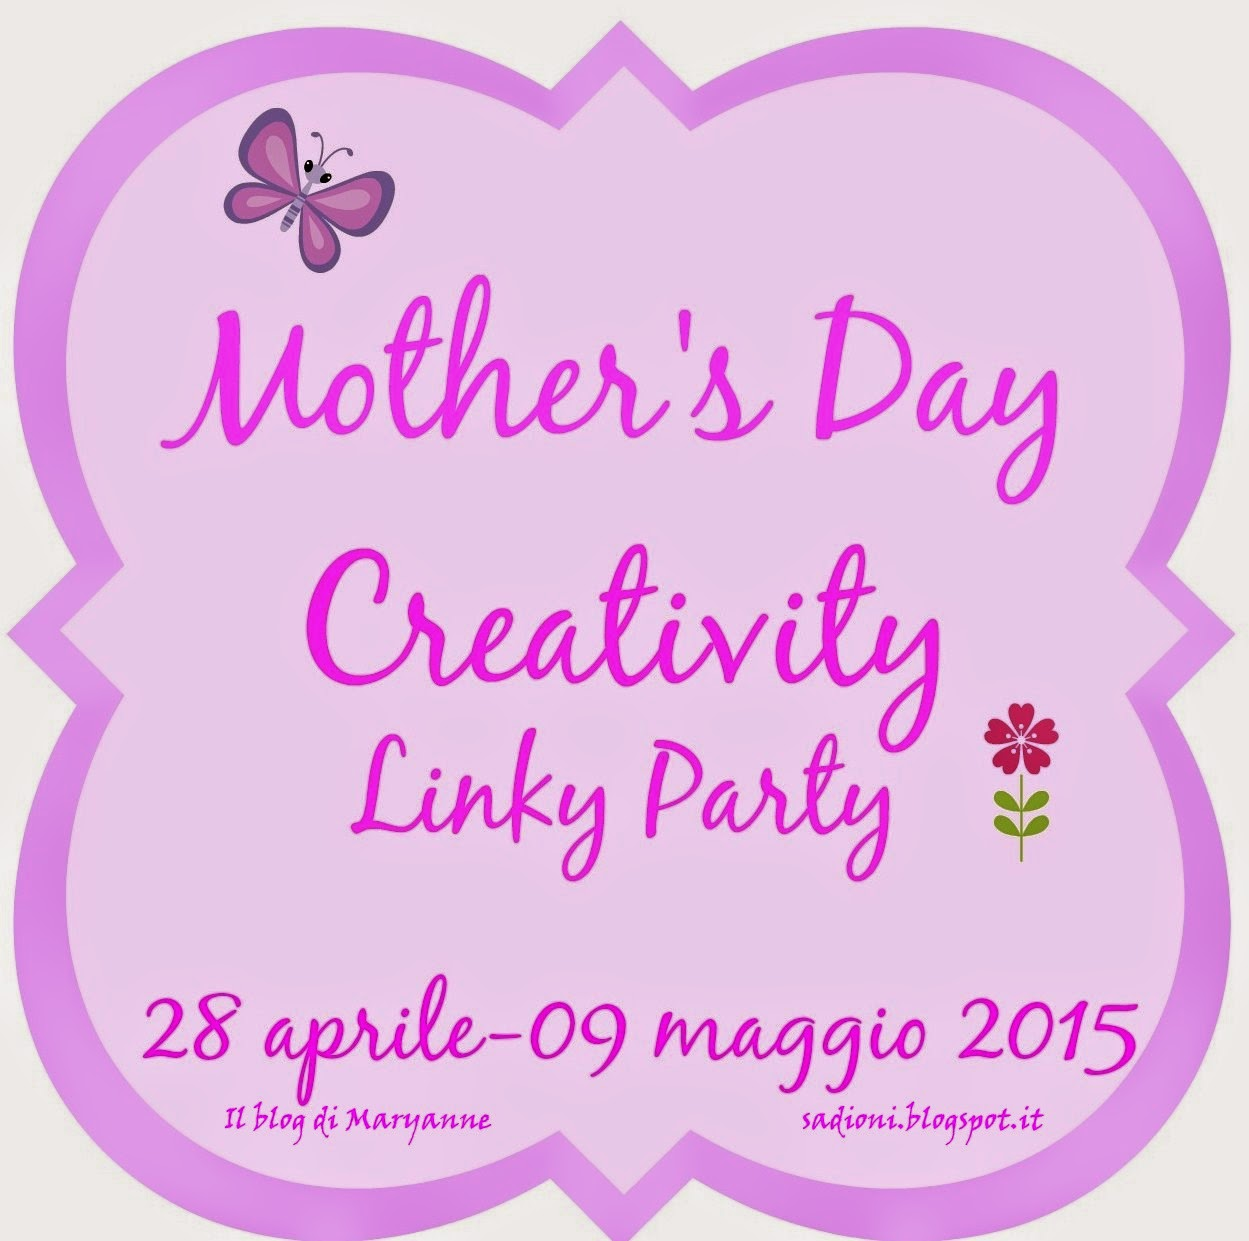 http://sadioni.blogspot.com/2015/04/5-creativity-linky-party-festa-della.html